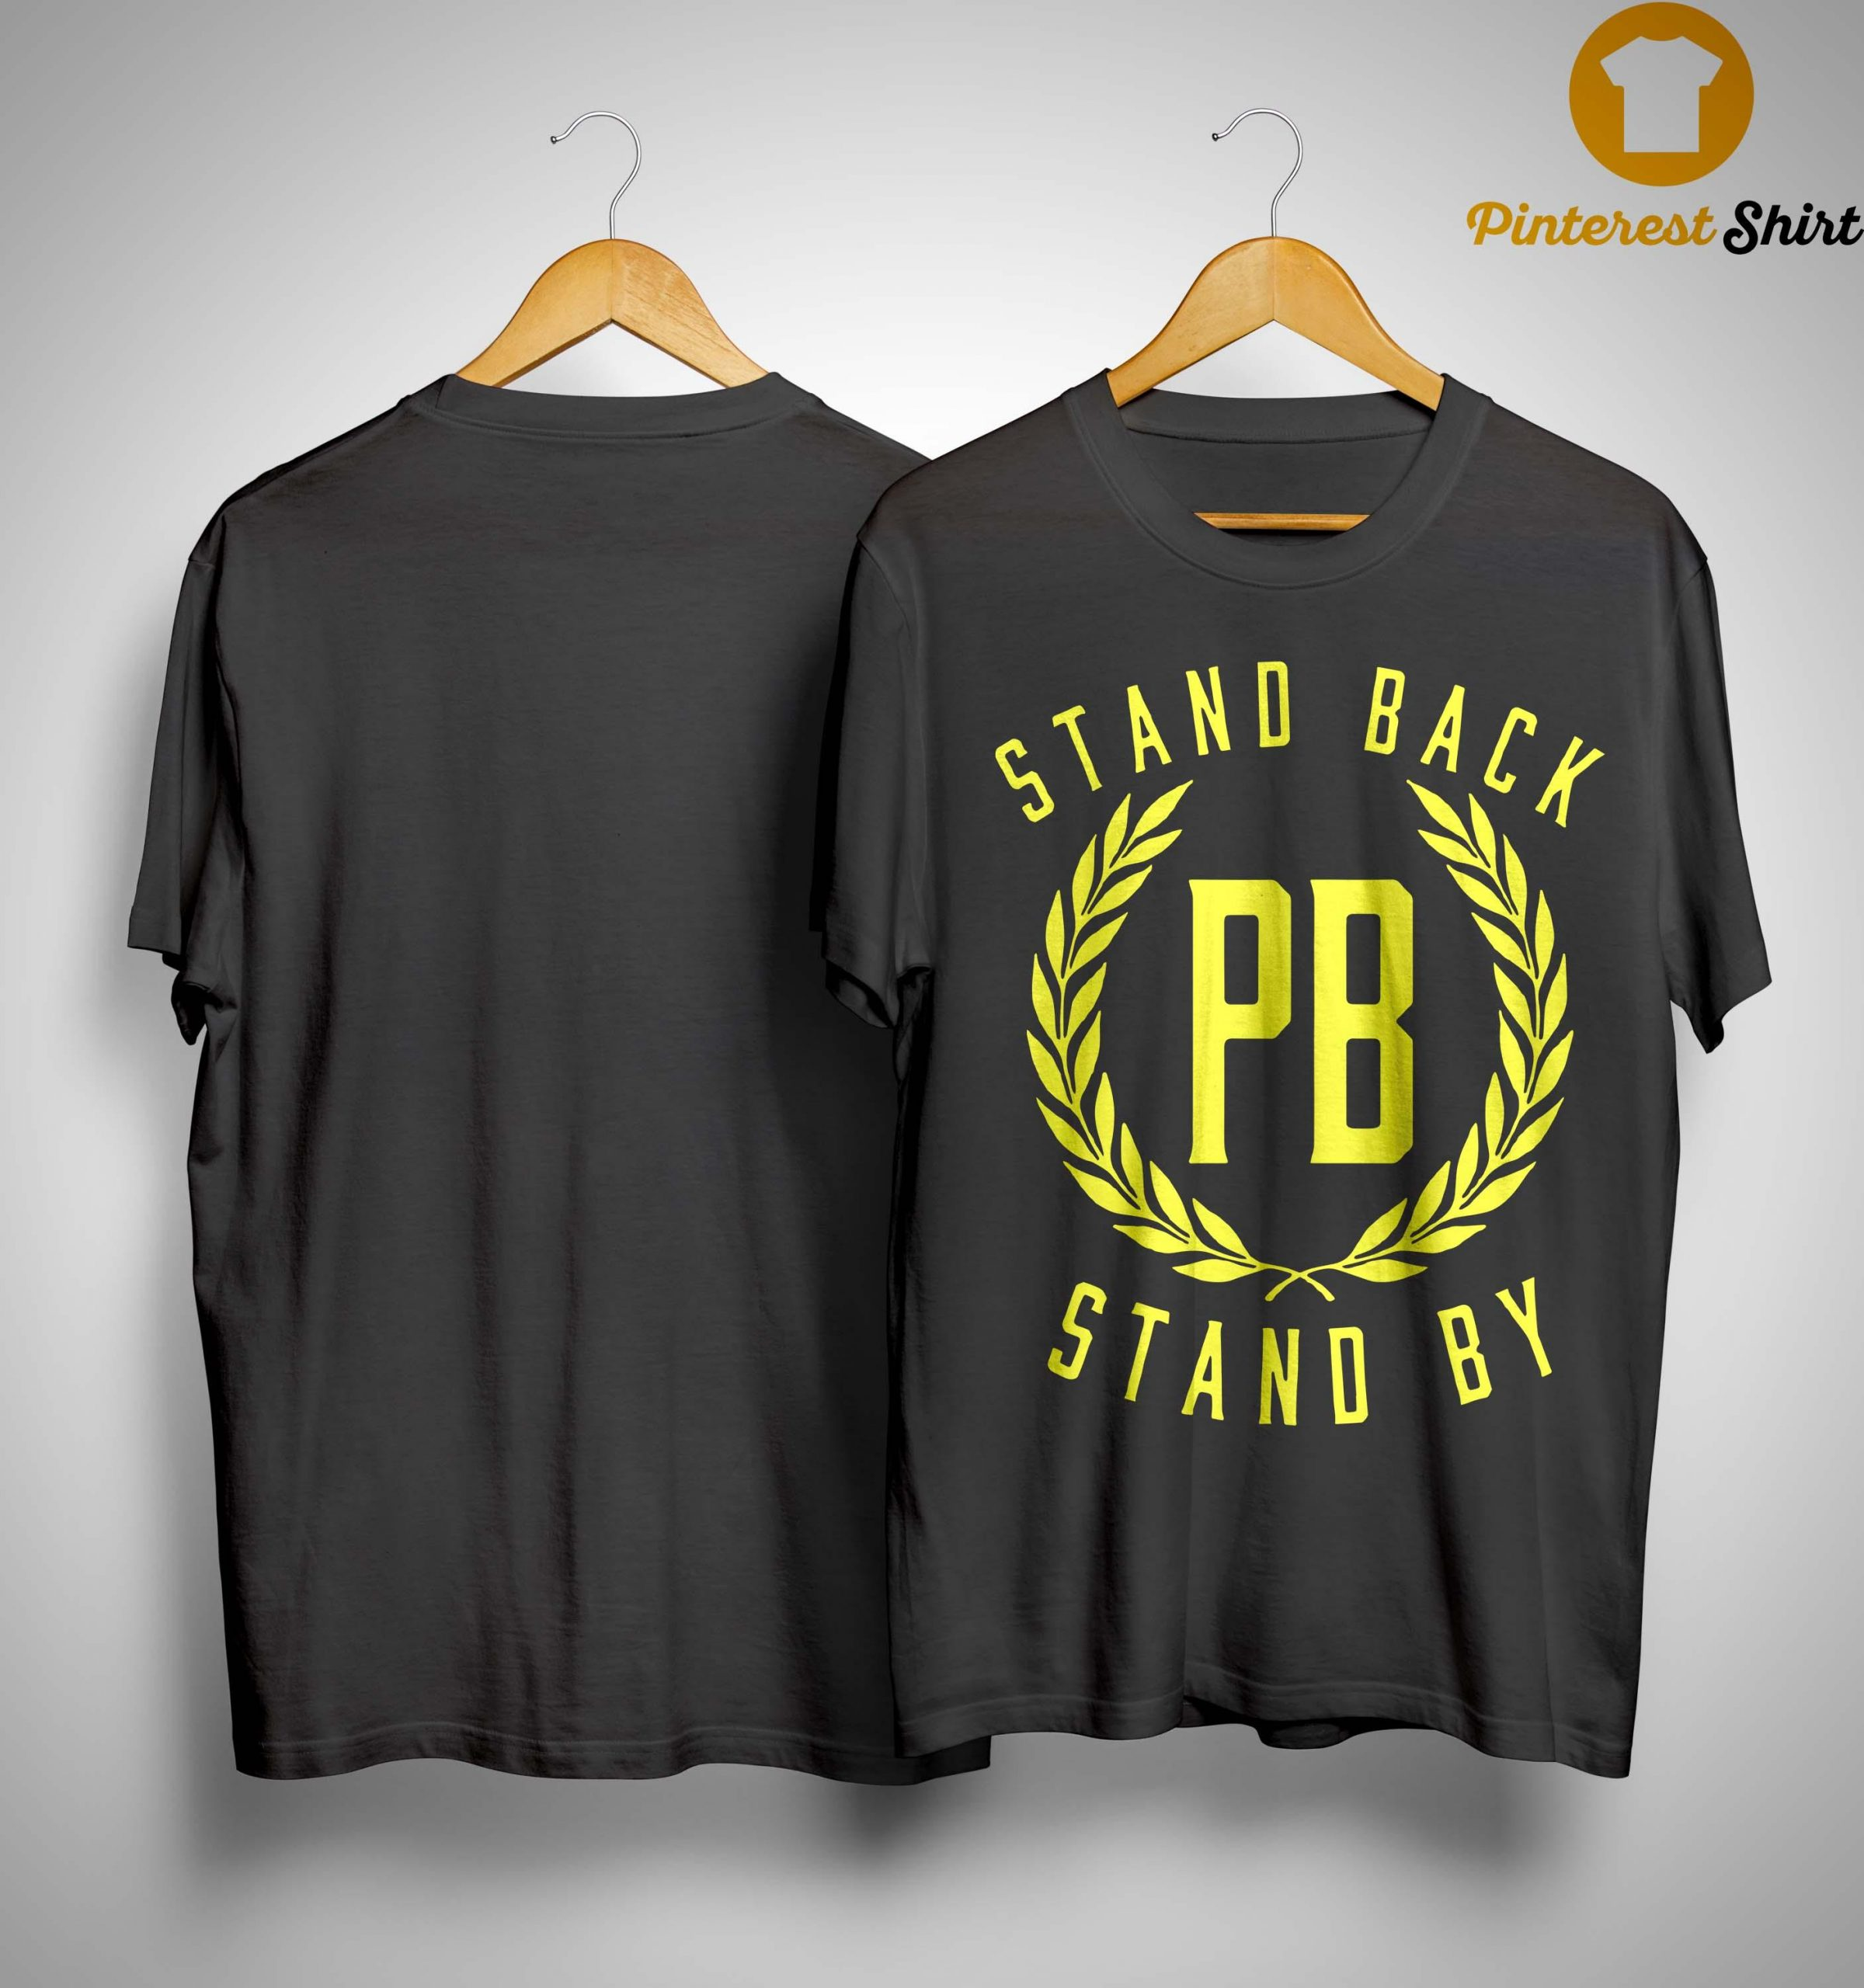 Socal Proud Boys Stand Back Stand By Shirt